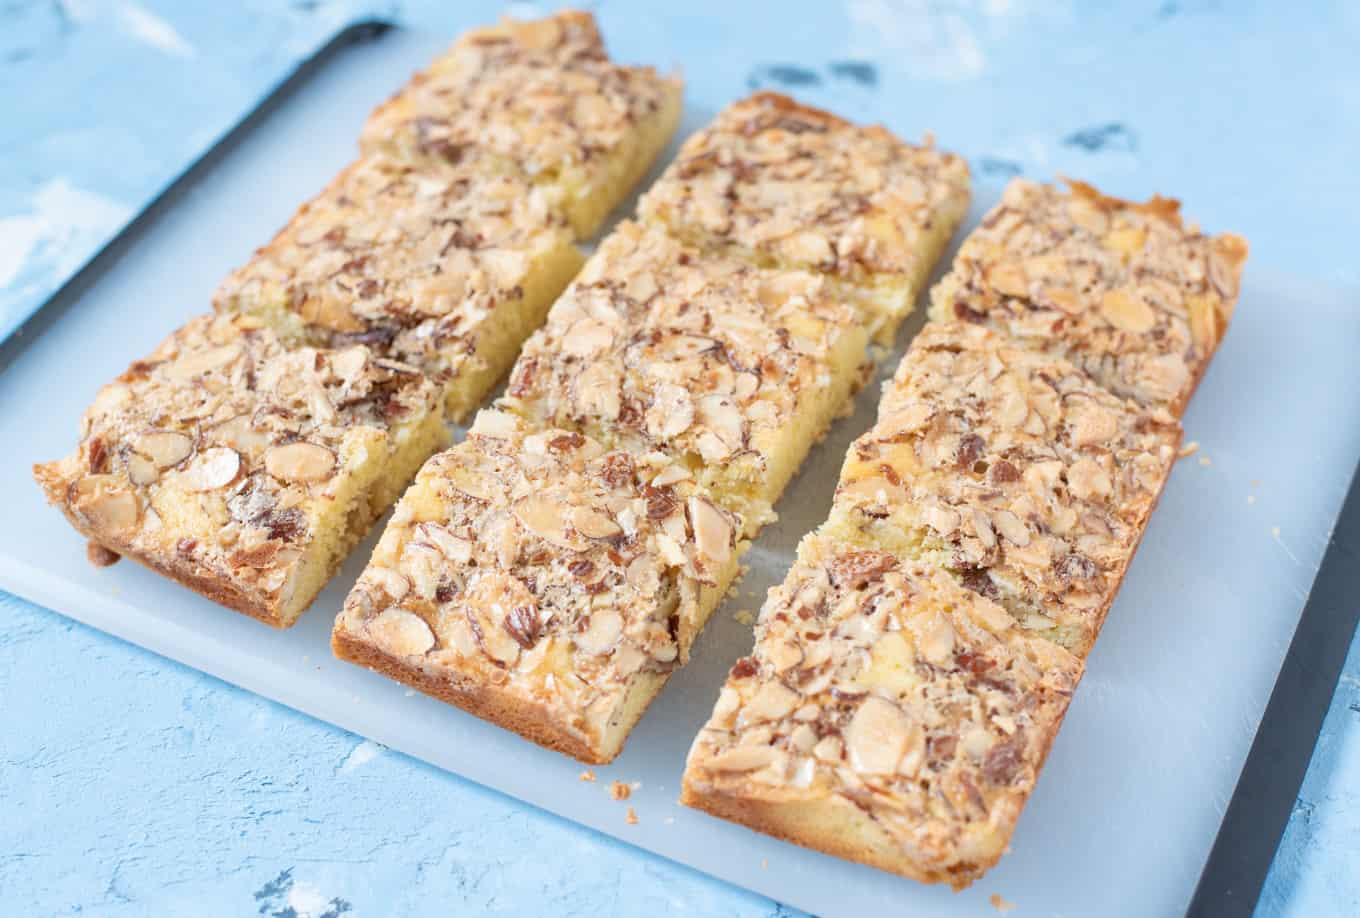 Swedish visiting cake bars resting on a cutting board.